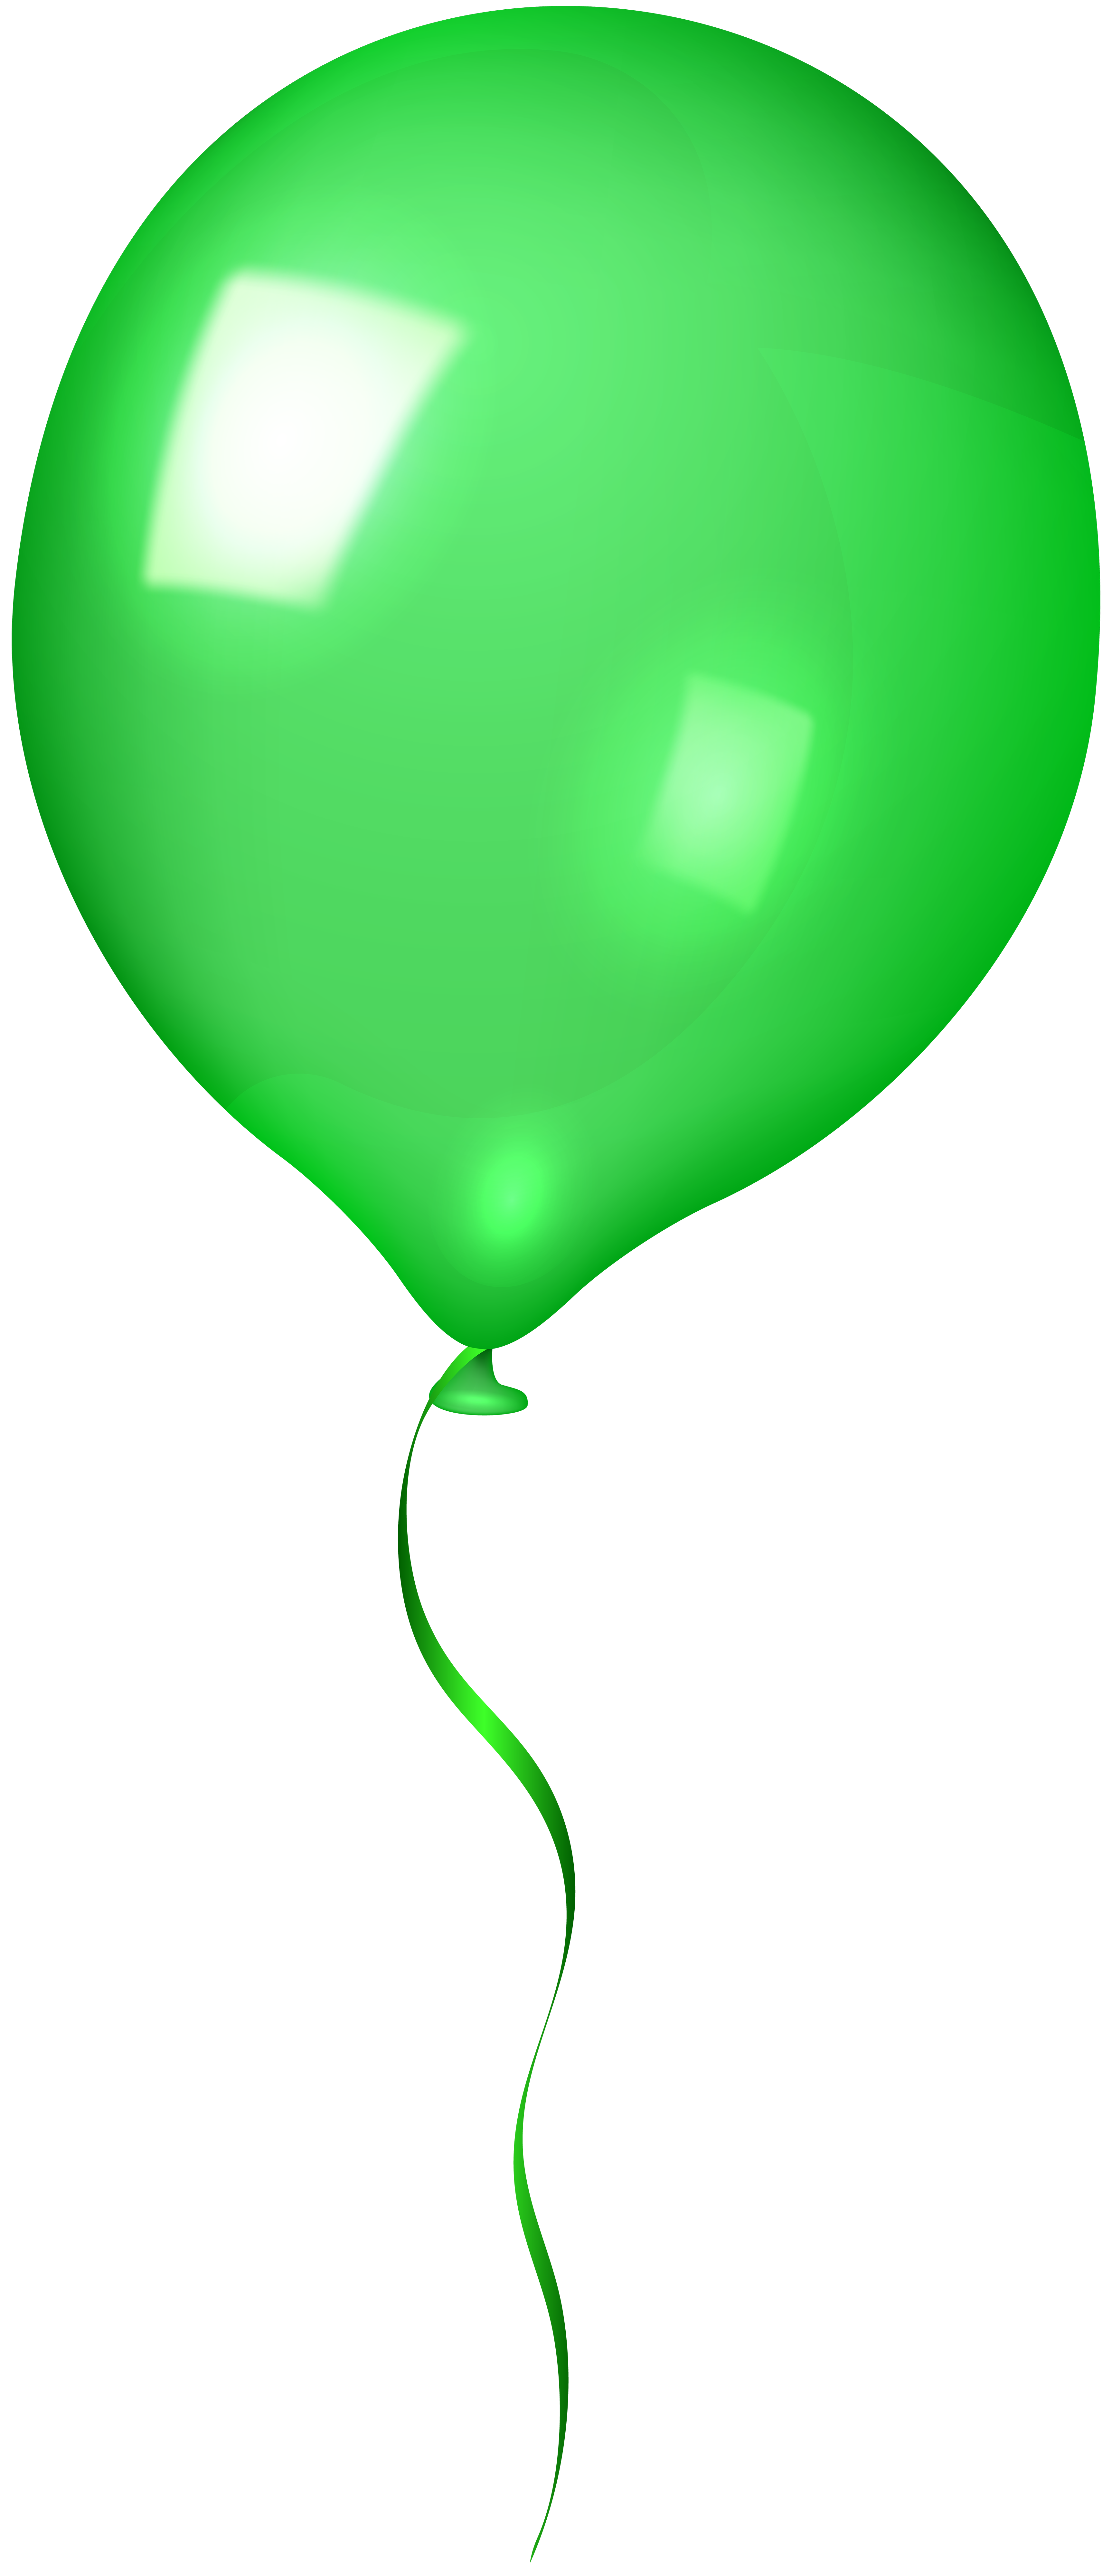 image black and white stock Green balloon clipart. Clip art image gallery